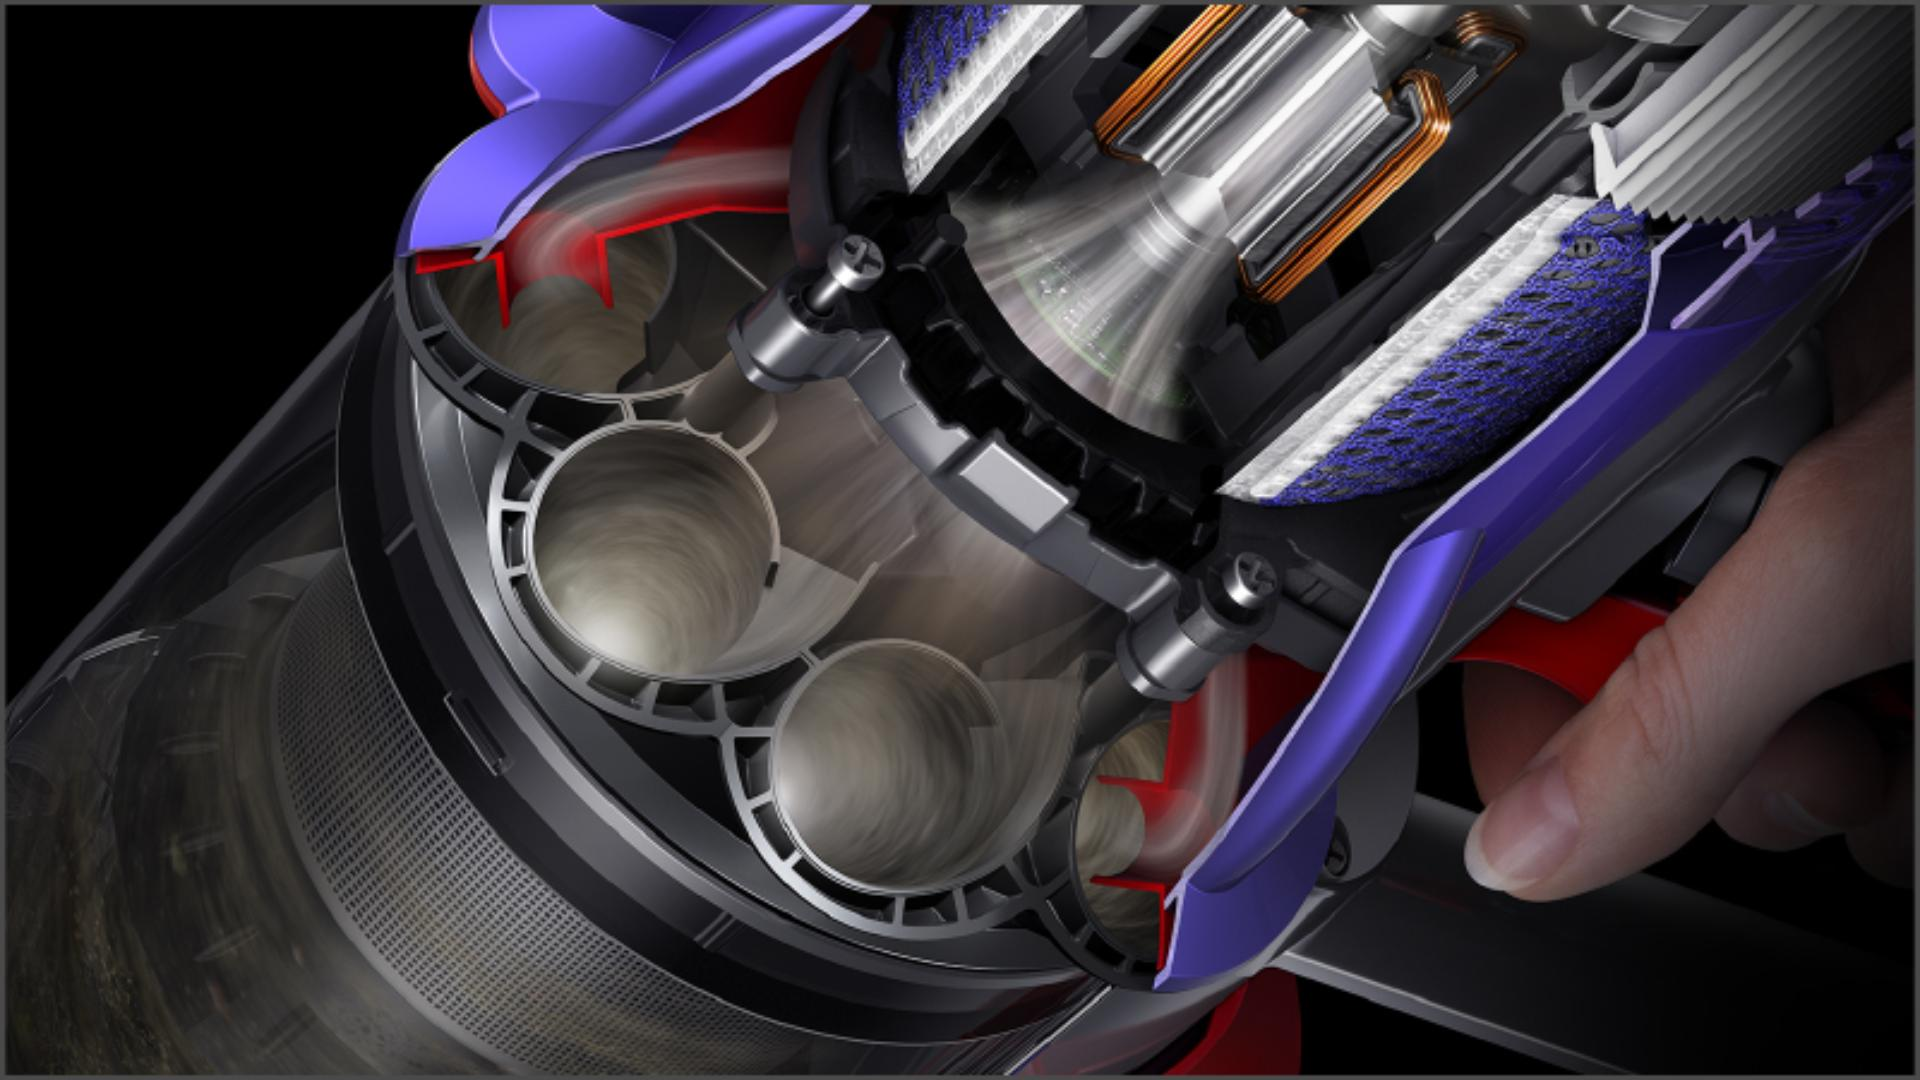 Cutaway illustration of Dyson Digital Slim cyclone and filters